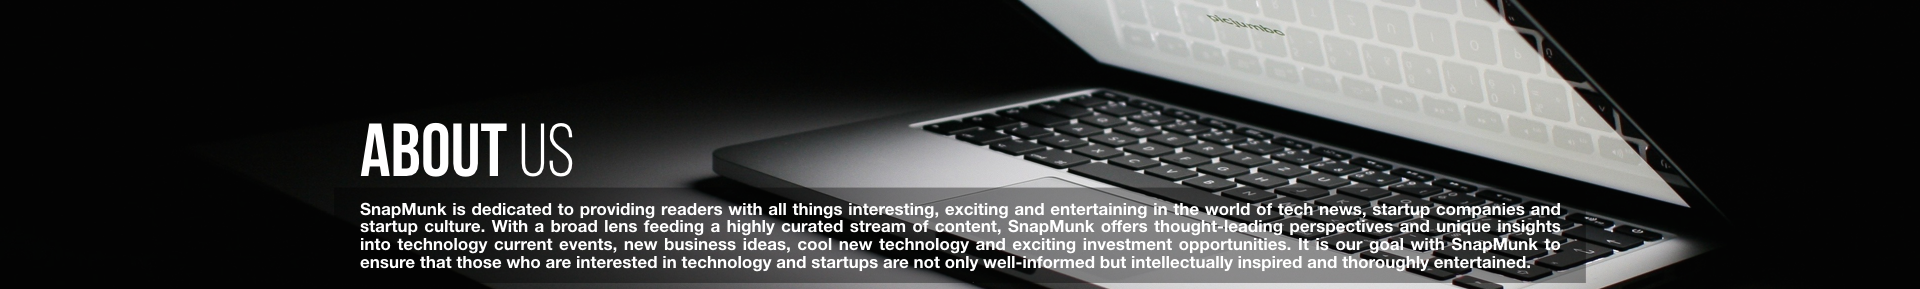 About SnapMunk